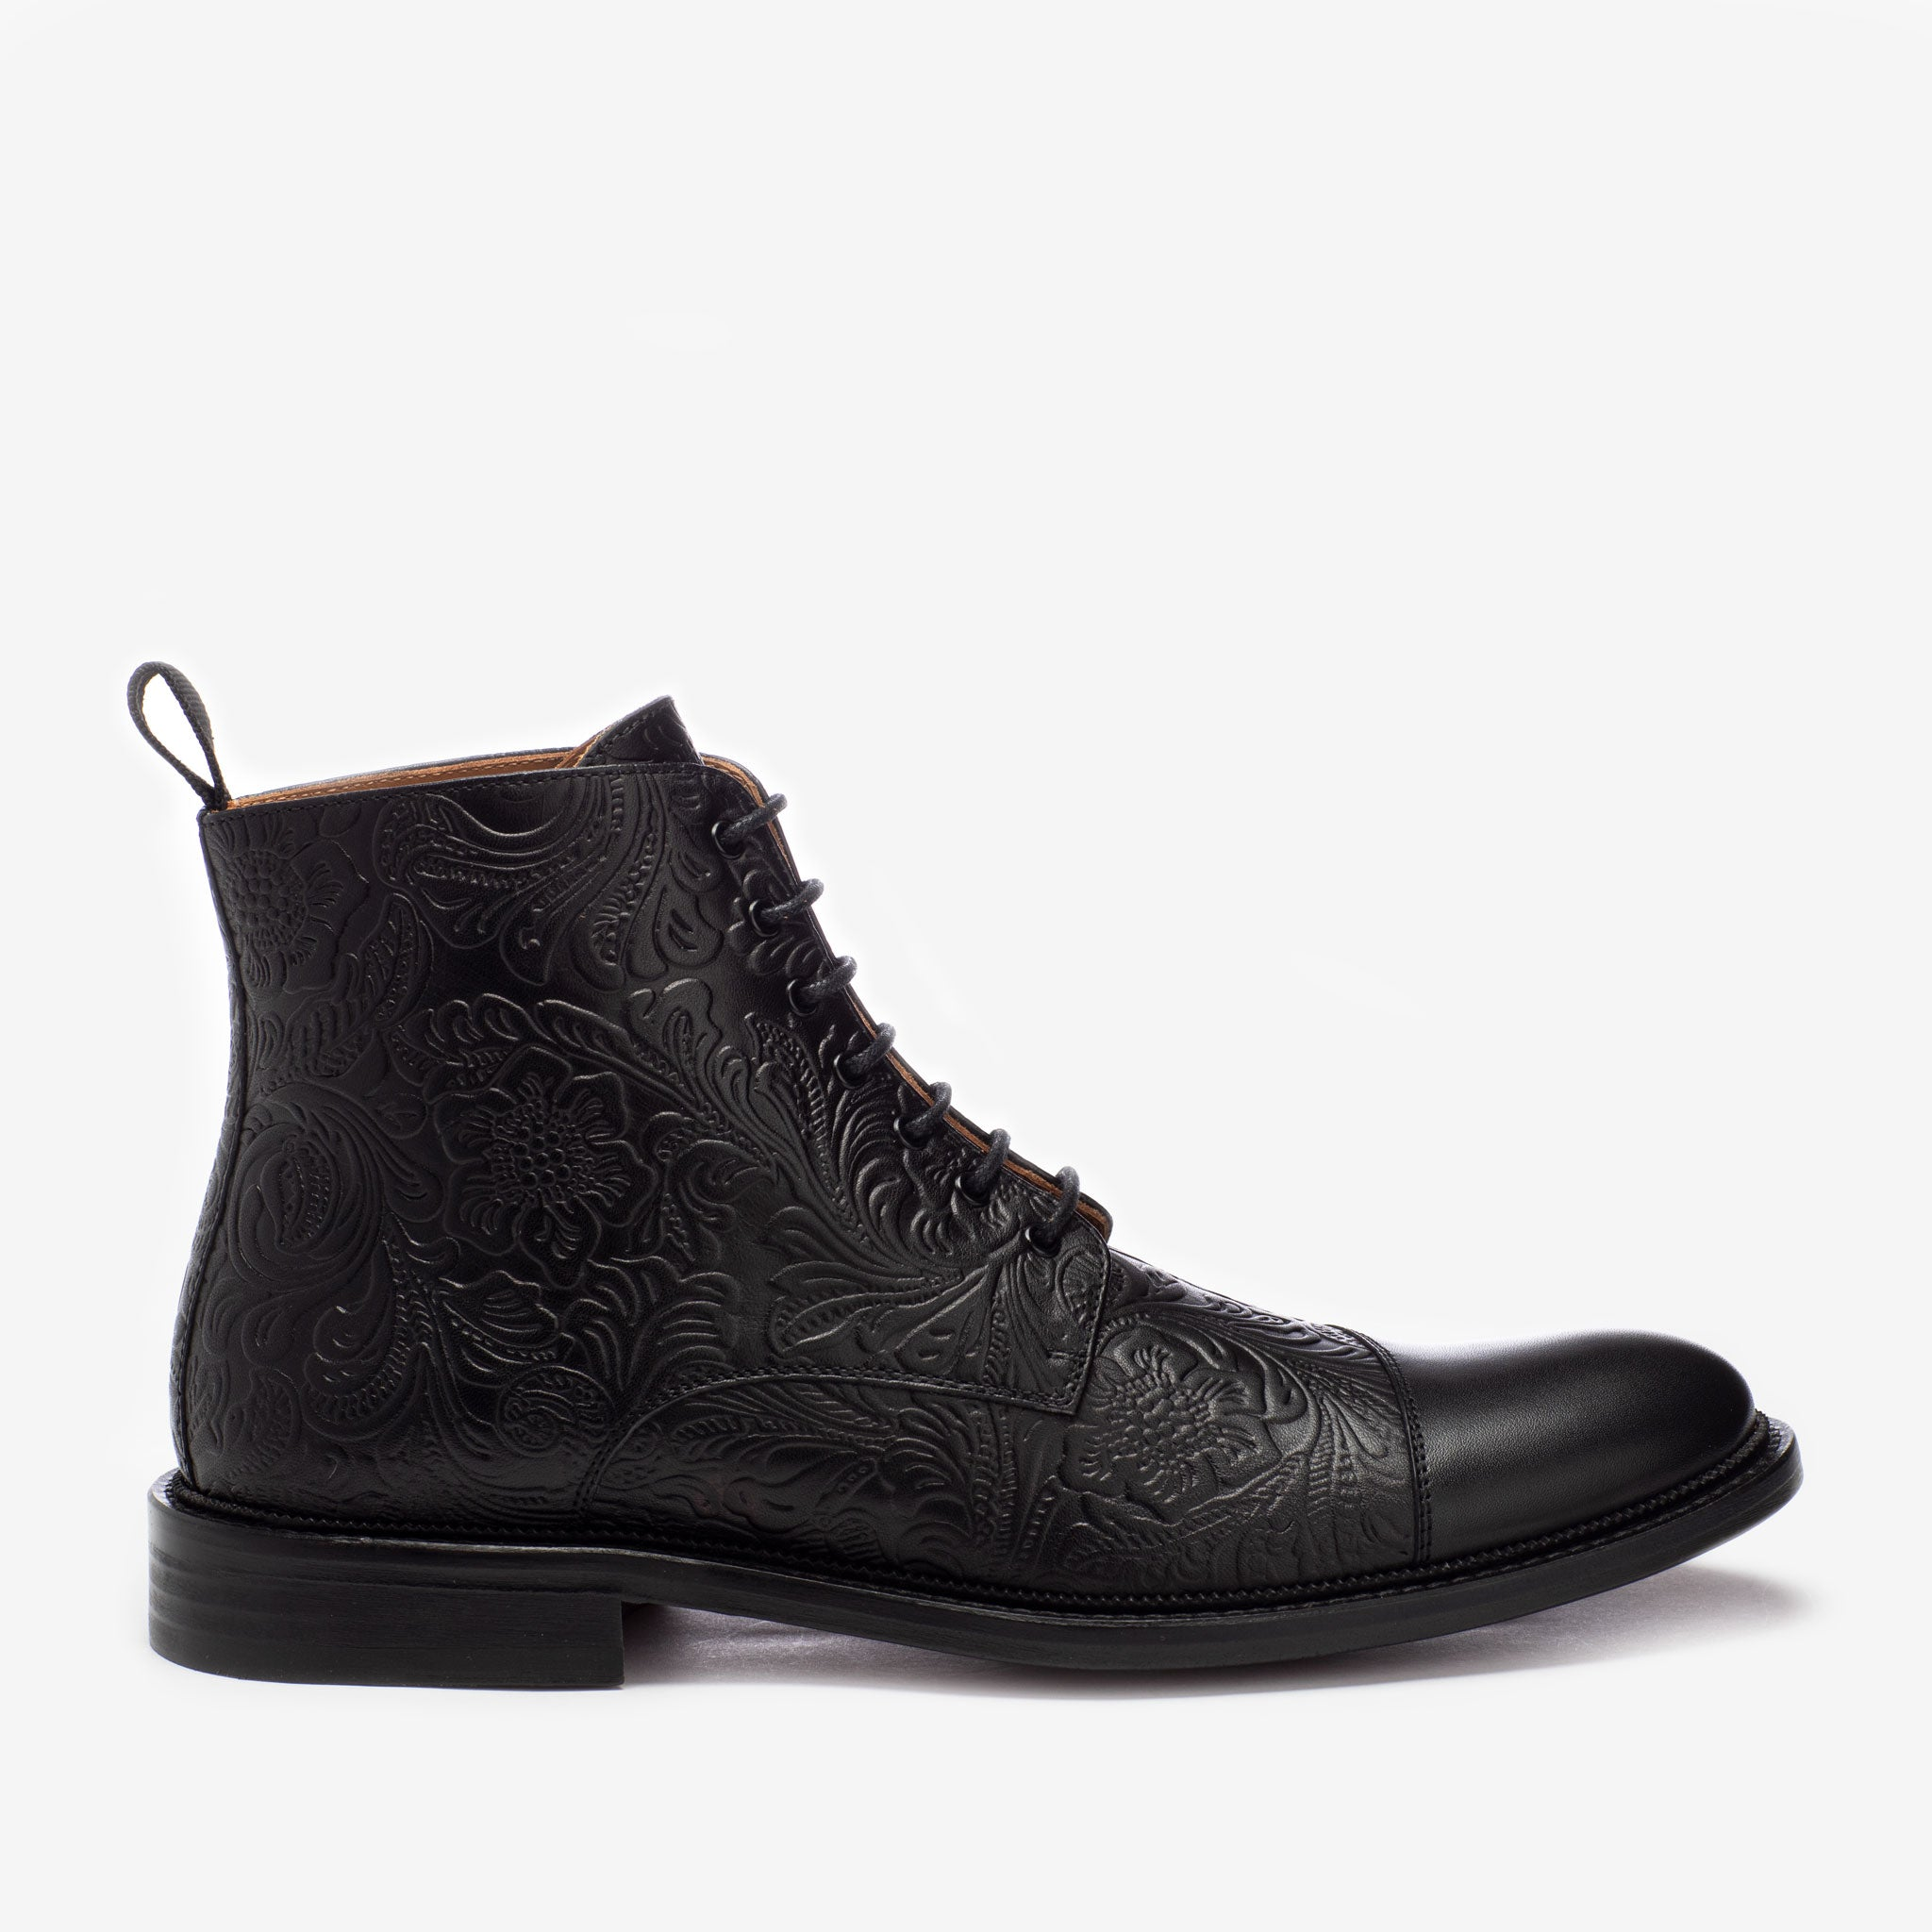 paris boot in black